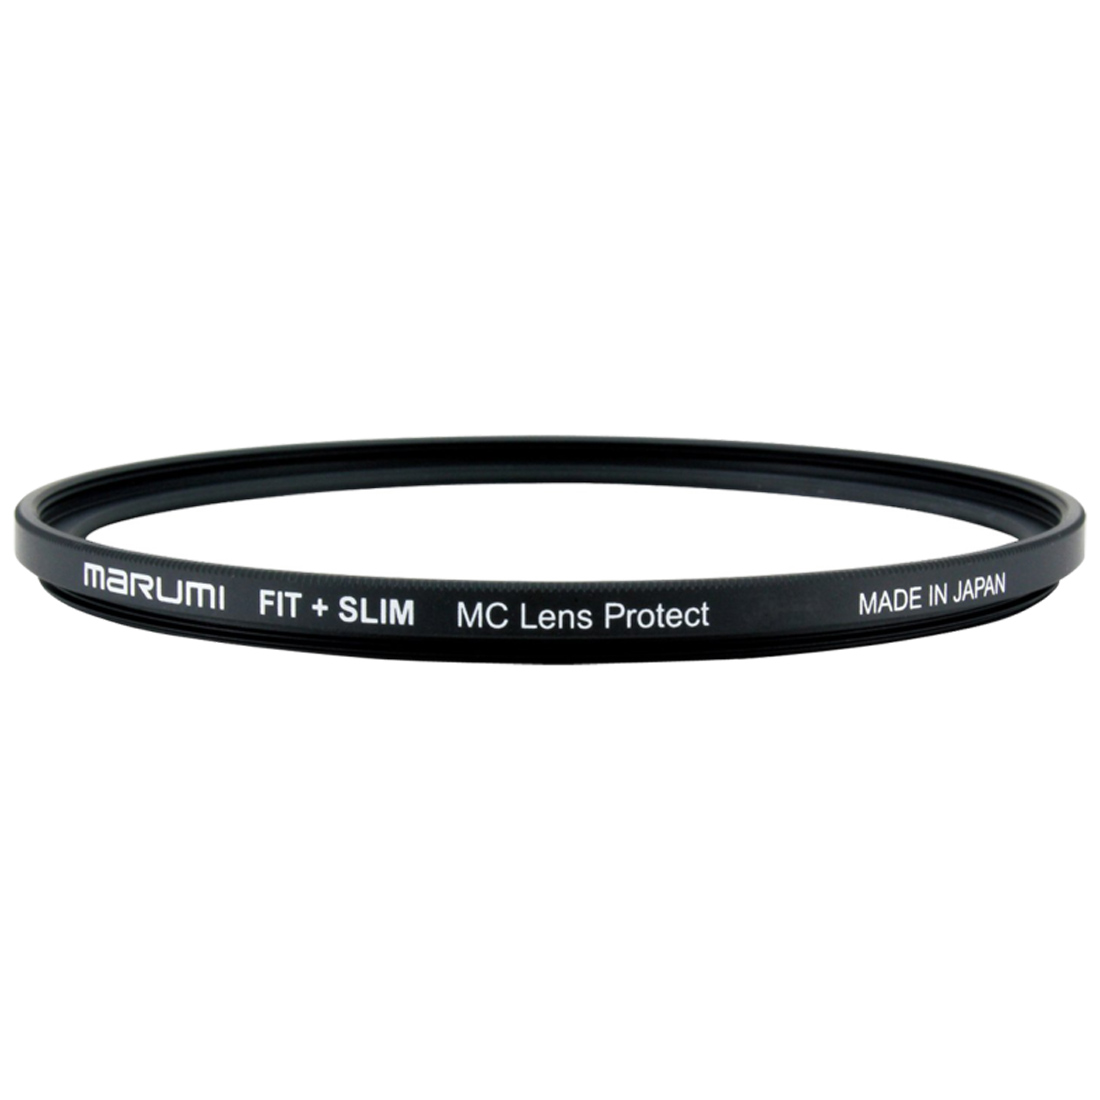 Zaštitni filter Fit+Slim Lens Protect Marumi - 62 mm